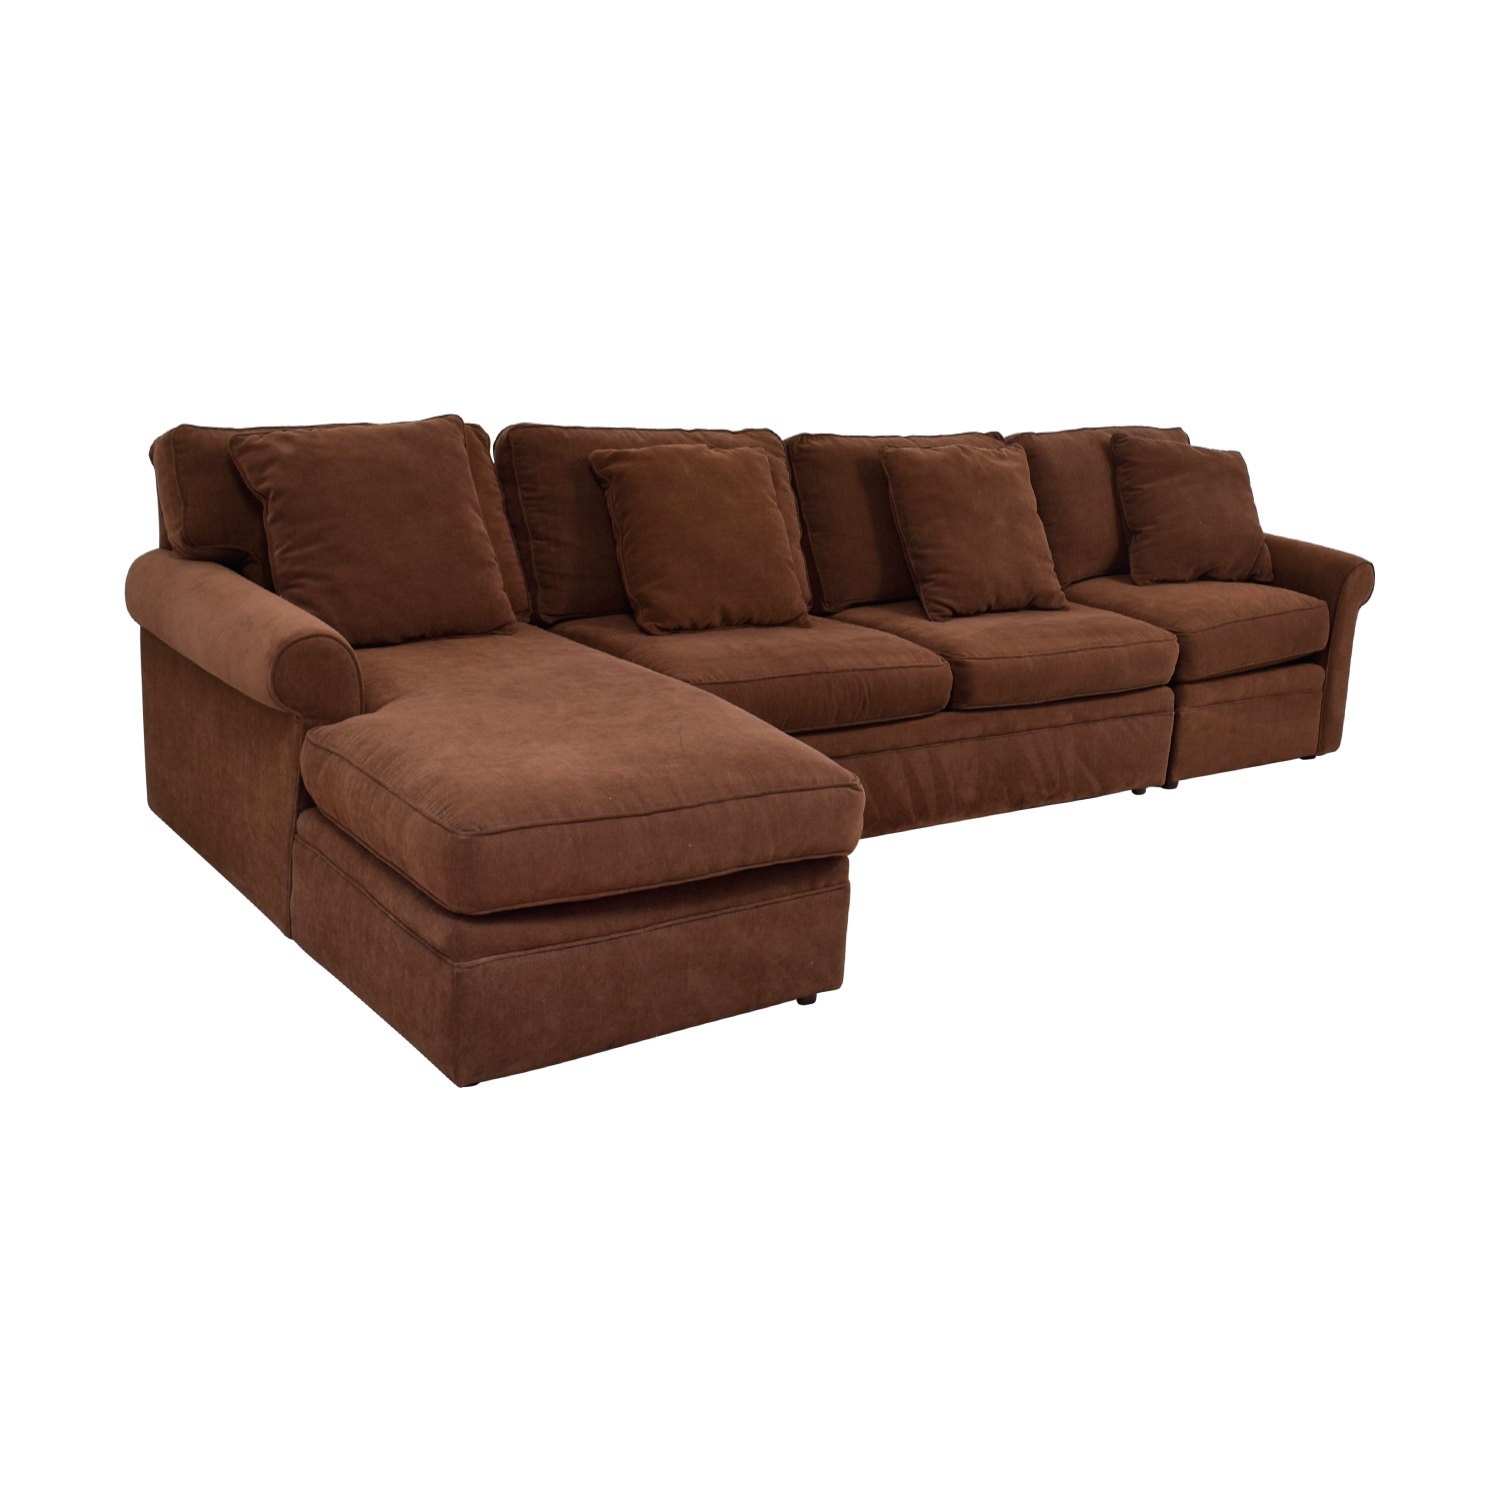 69% OFF - Rowe Furniture Rowe Furniture Brown Sectional Sofa / Sofas